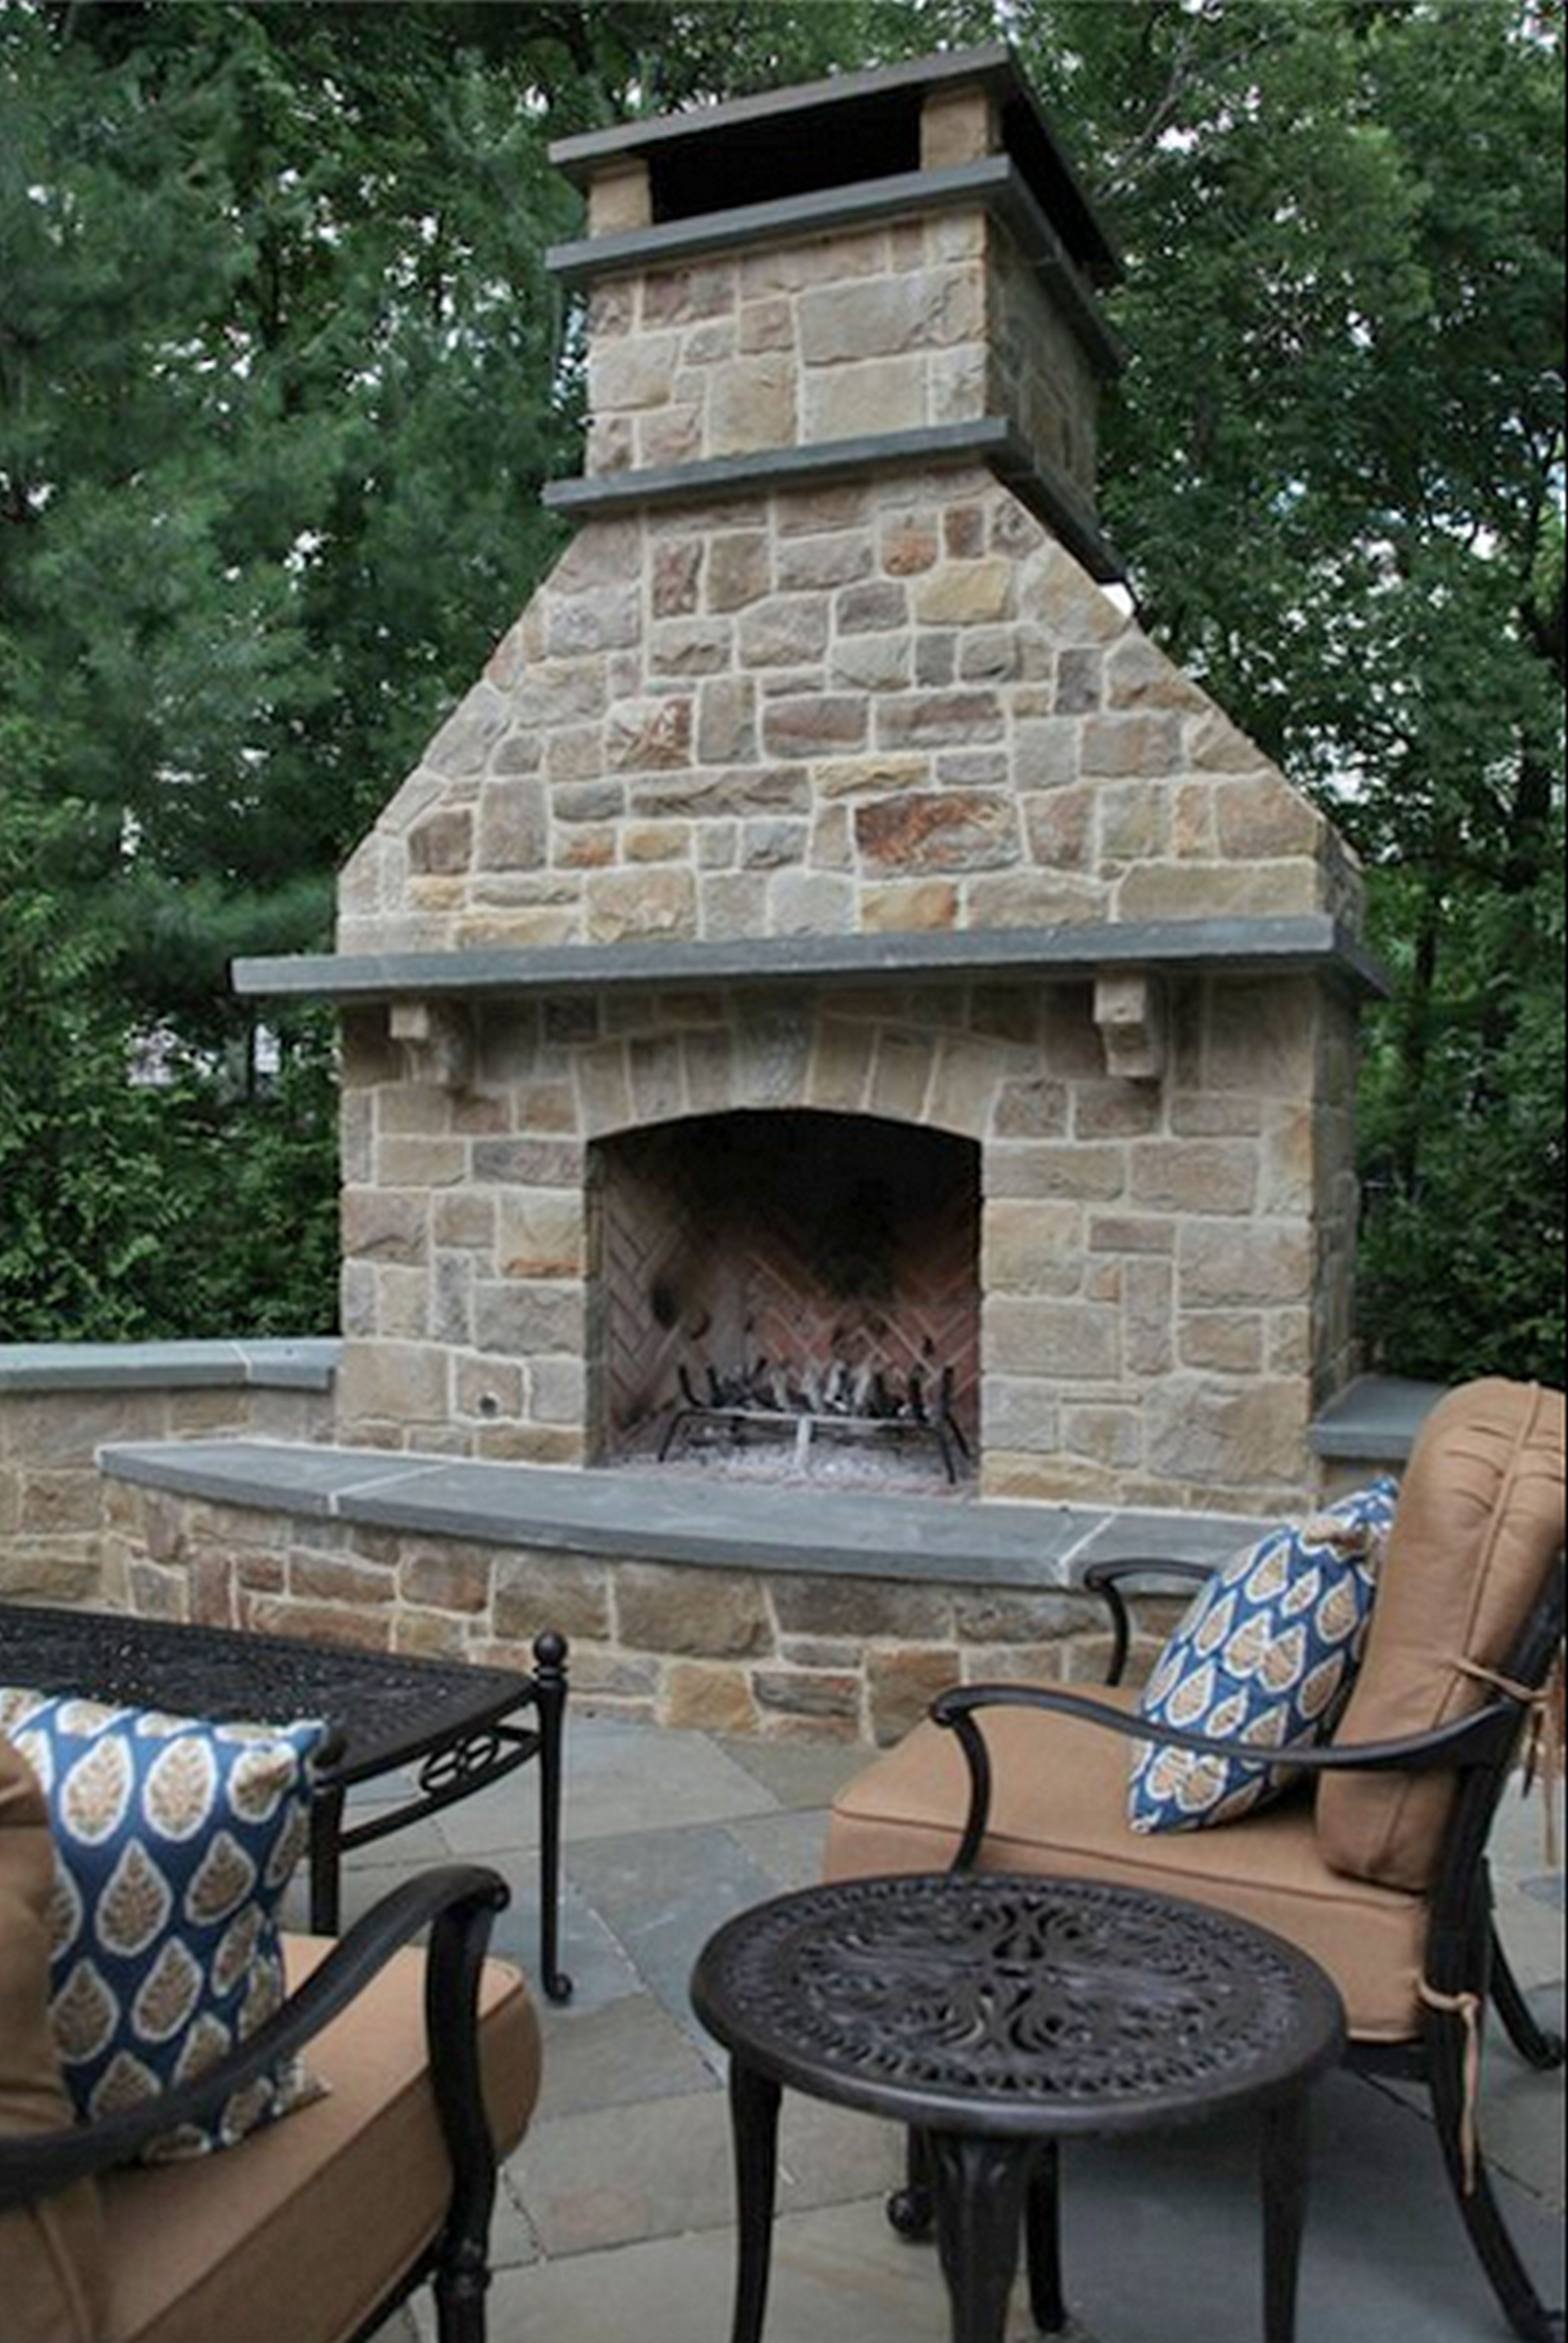 53aca5c780ffe9e1edb1c6a355a9afb3 Top Result 53 Inspirational Outside Stone Fireplace